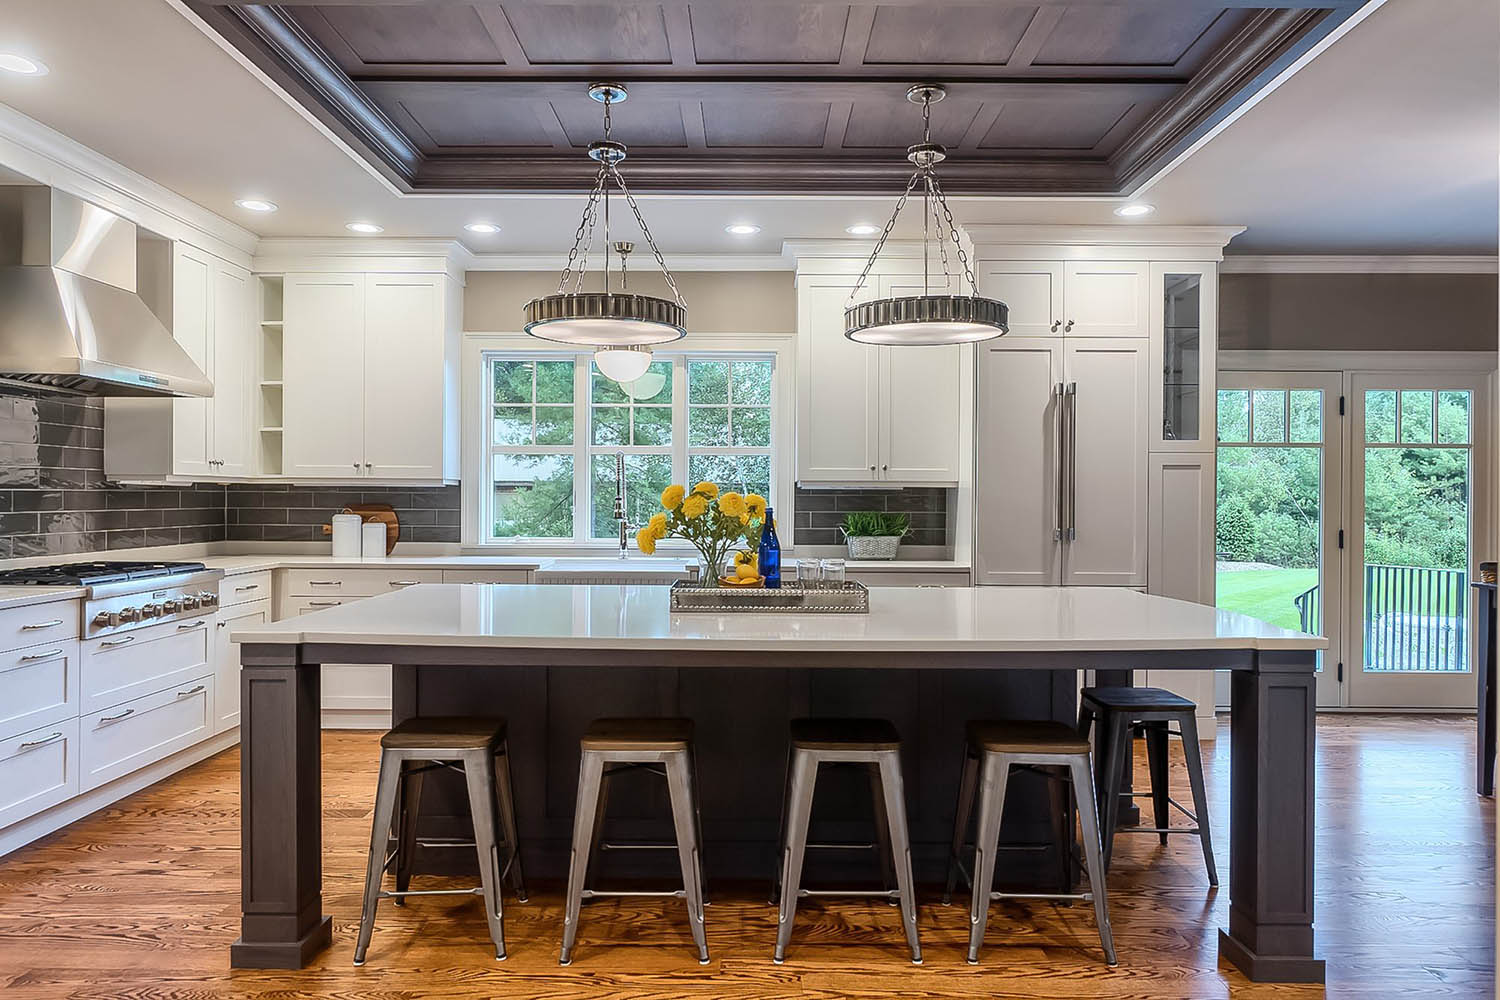 dark brown kitchen coffered ceiling with soffits and pendant lighting